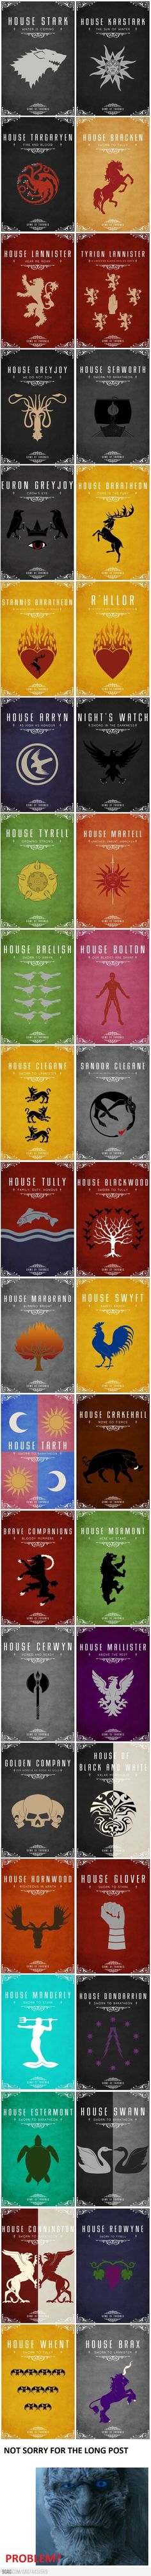 not sure these are all correct tho...House Baelish actually has the Titan's head for it's sigil, the mockingbird is one that Littlefinger chose for himself.